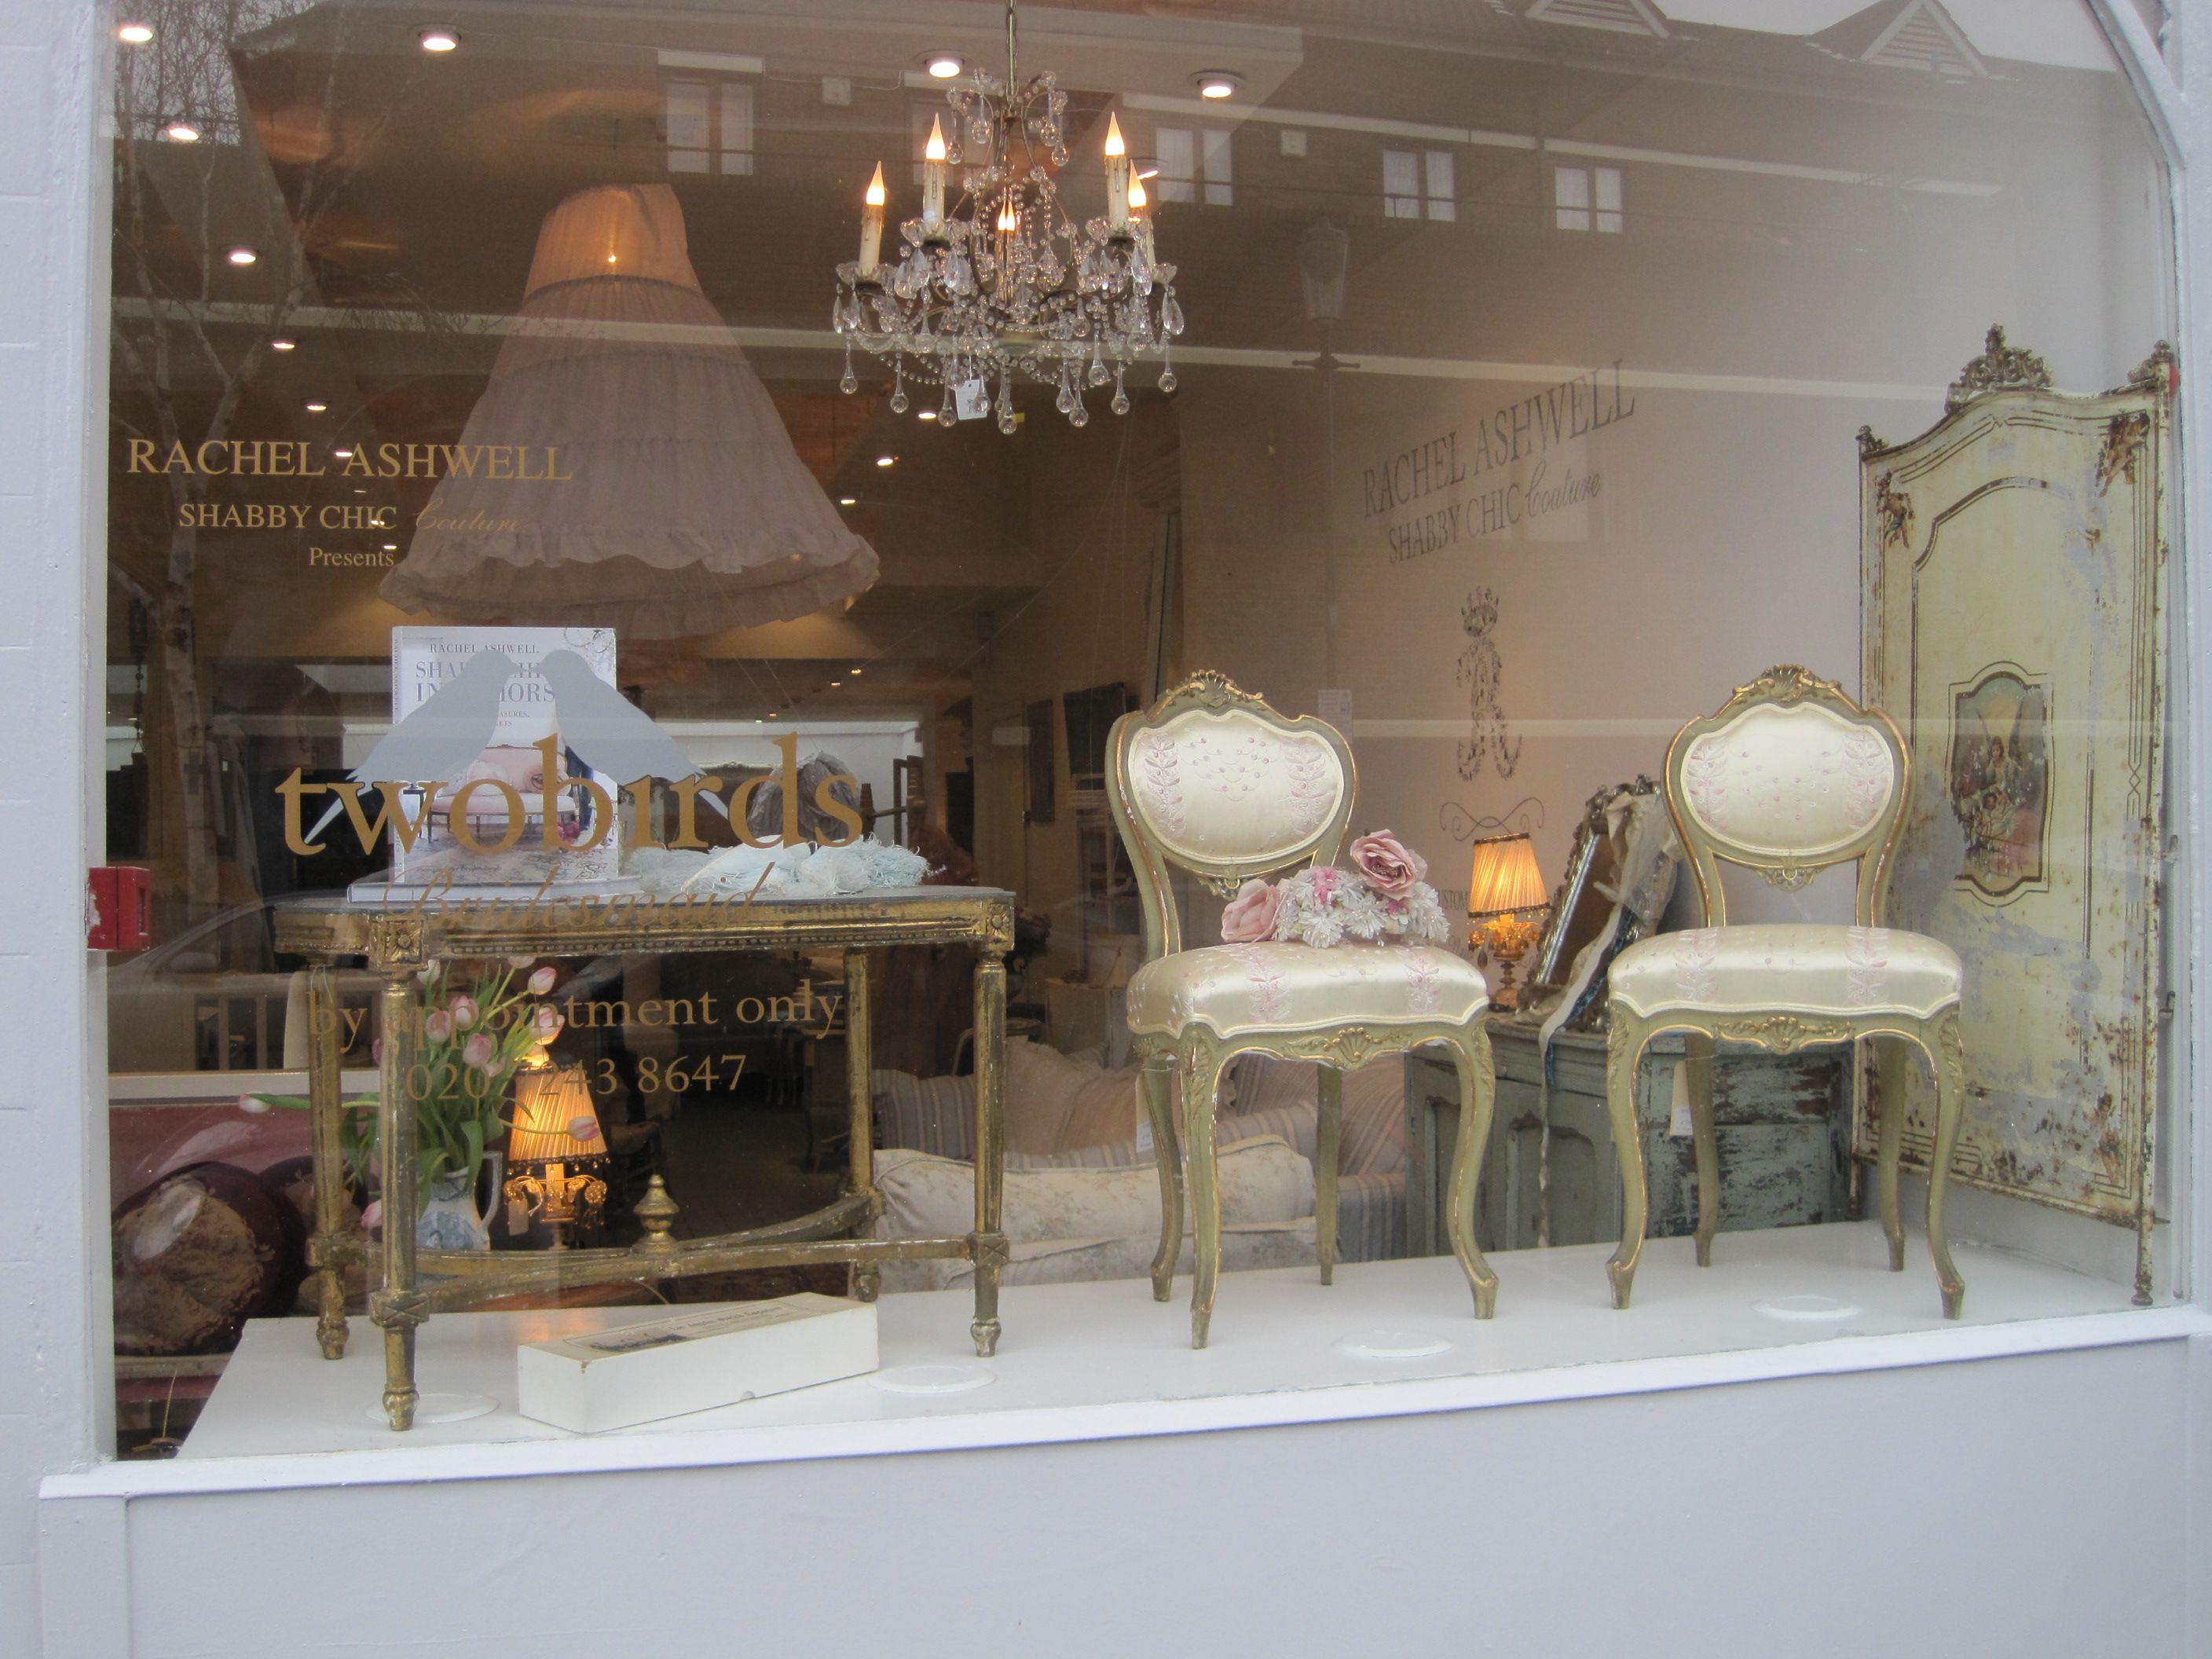 Shabby Chic Shop Rachel Ashwell Shabby Chic Couture Store London Lovely